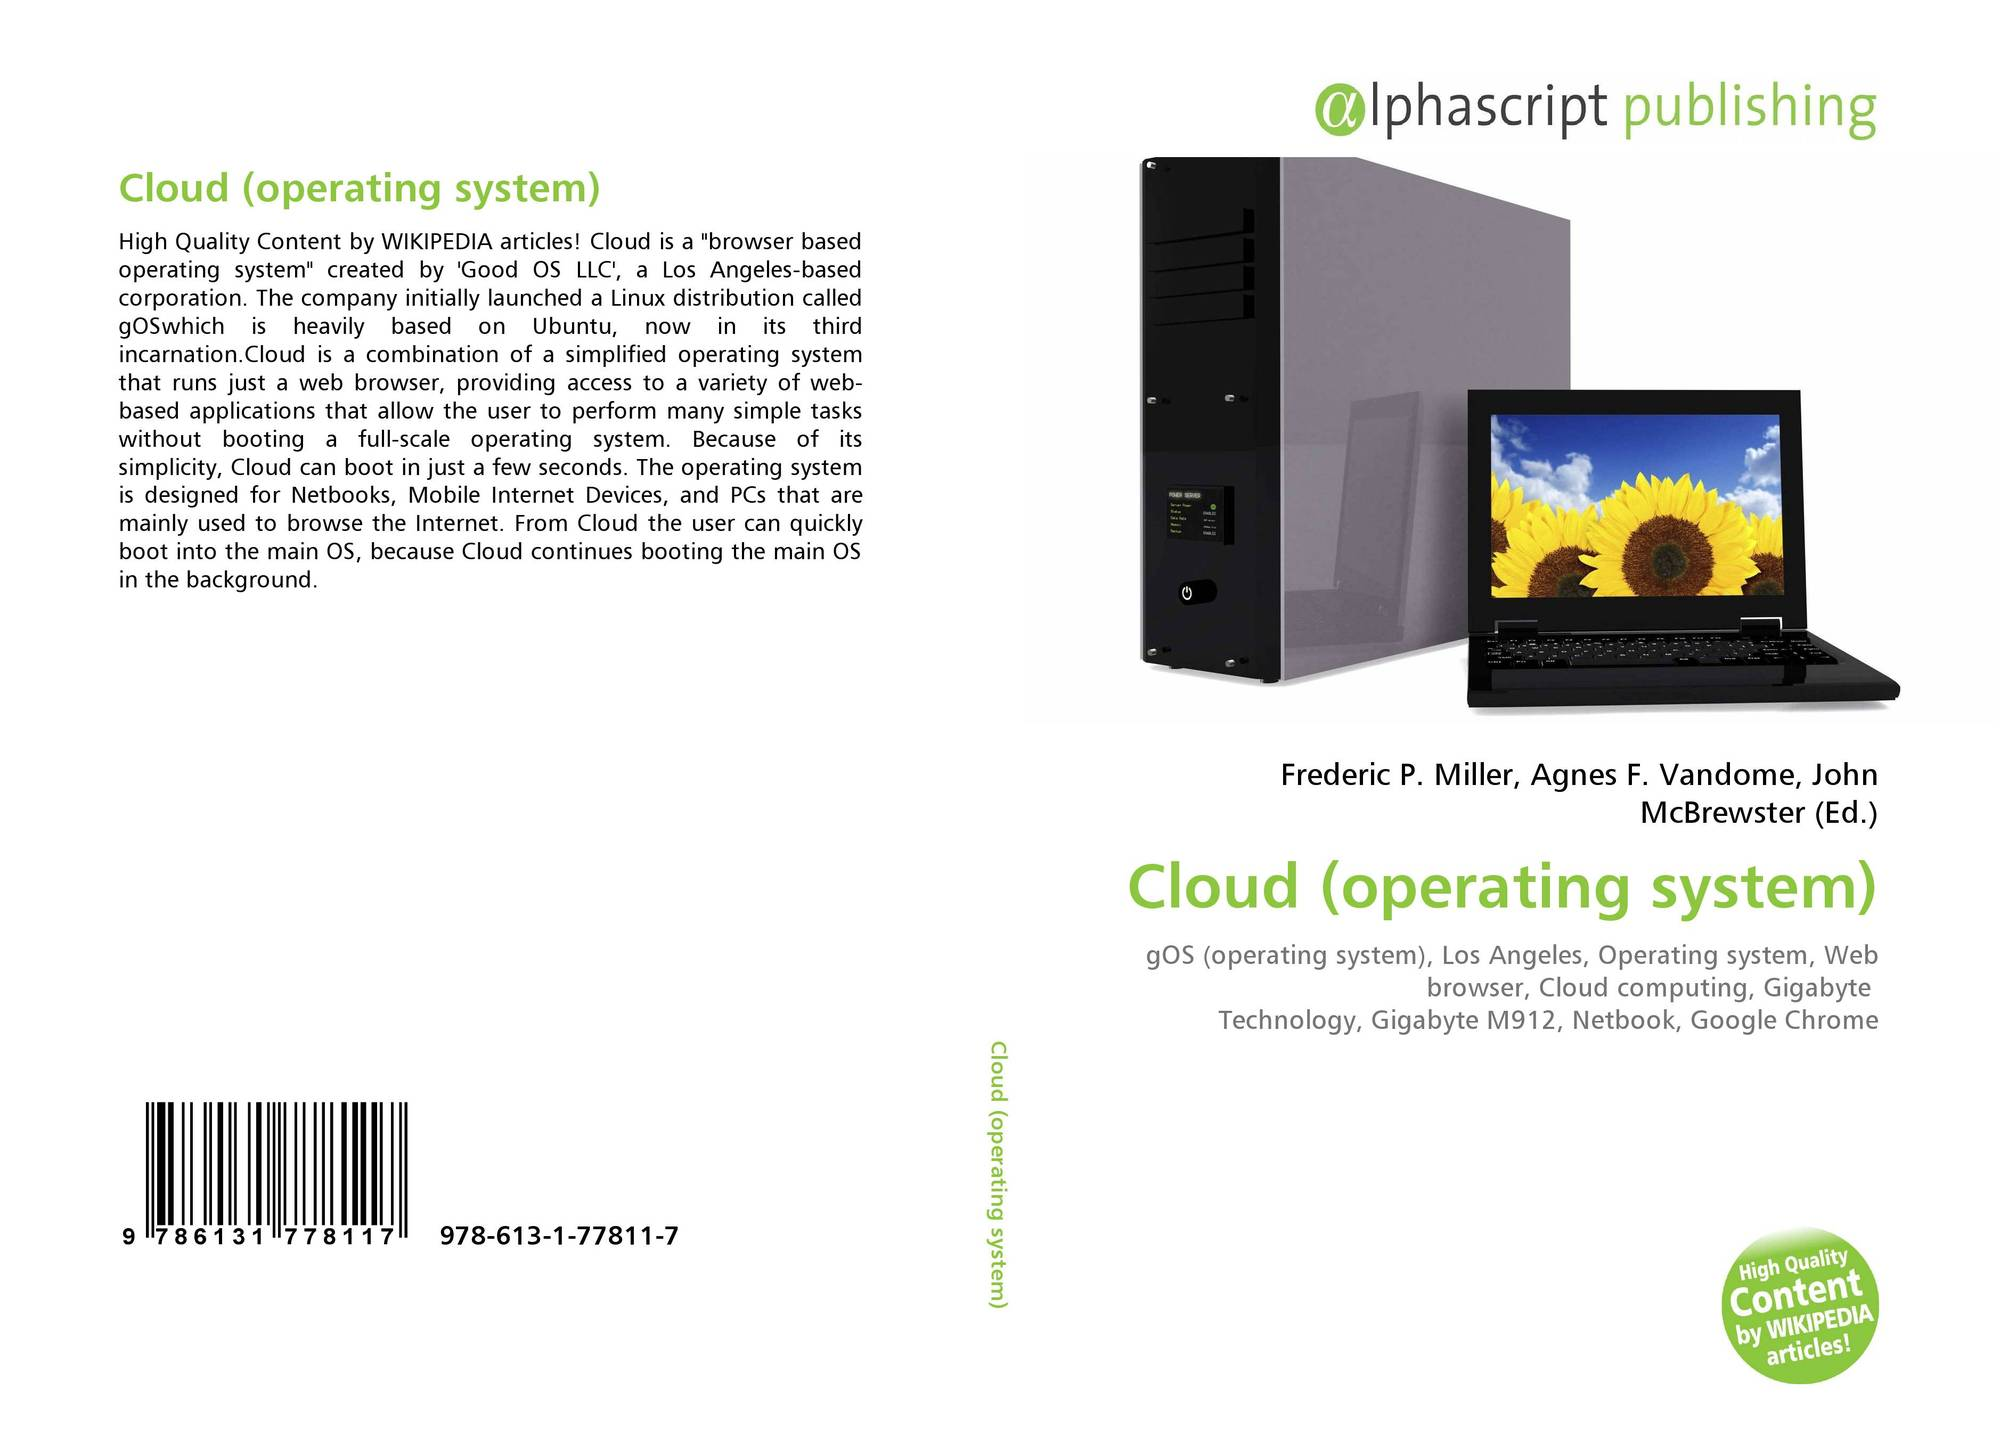 a cloud operating system